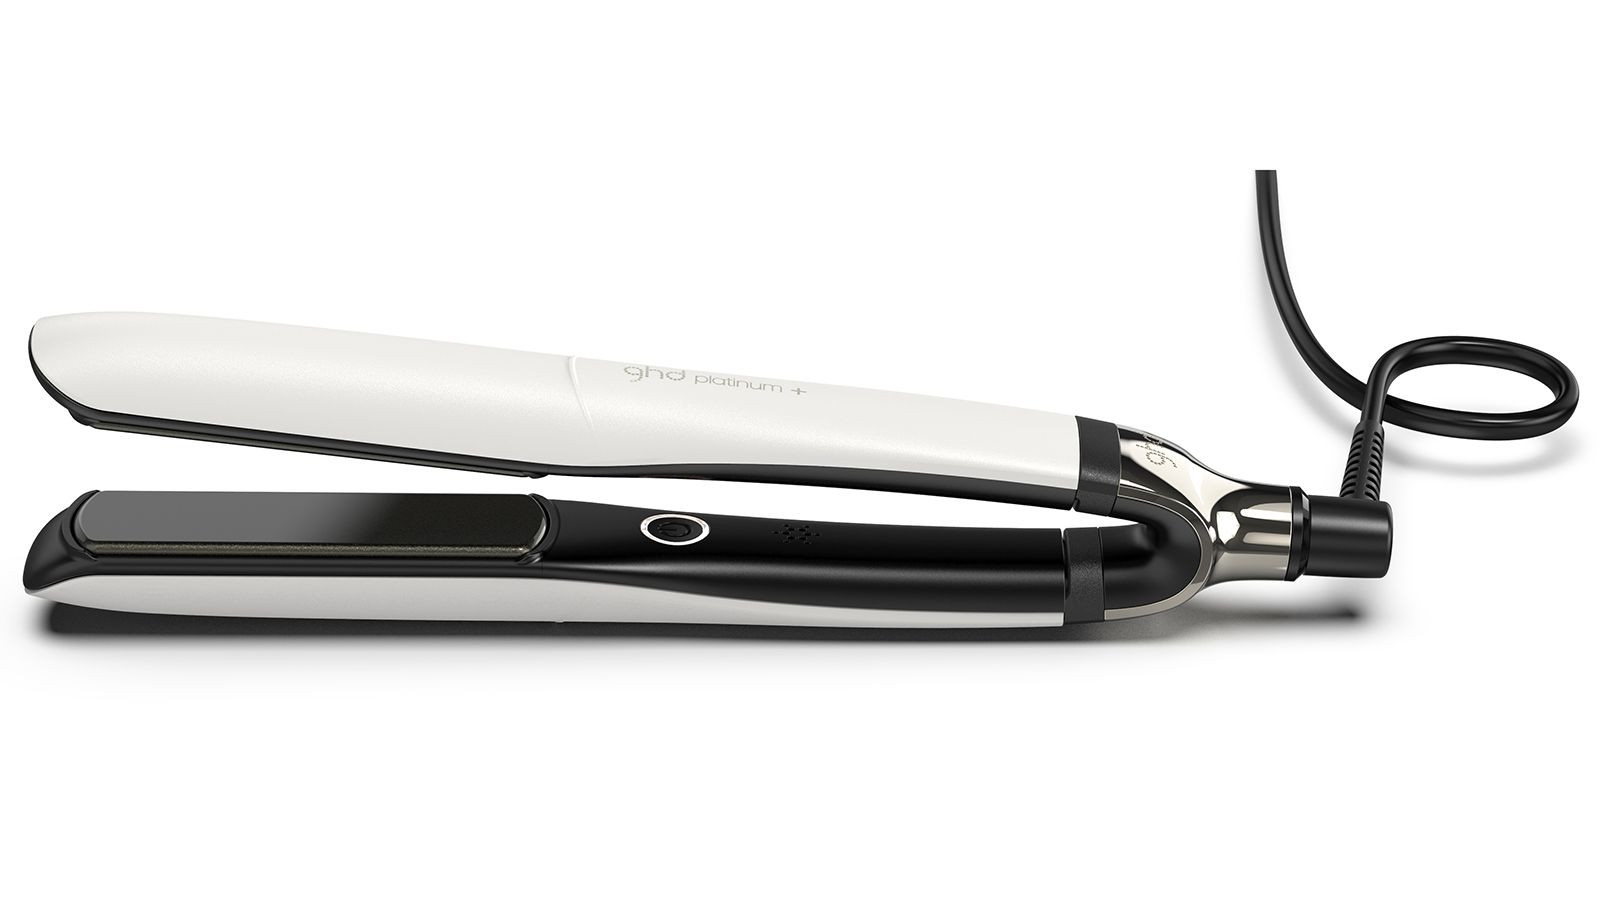 GHD Platinum+ Hair Straightener review: Is the newest drop from the iconic brand better than the rest?